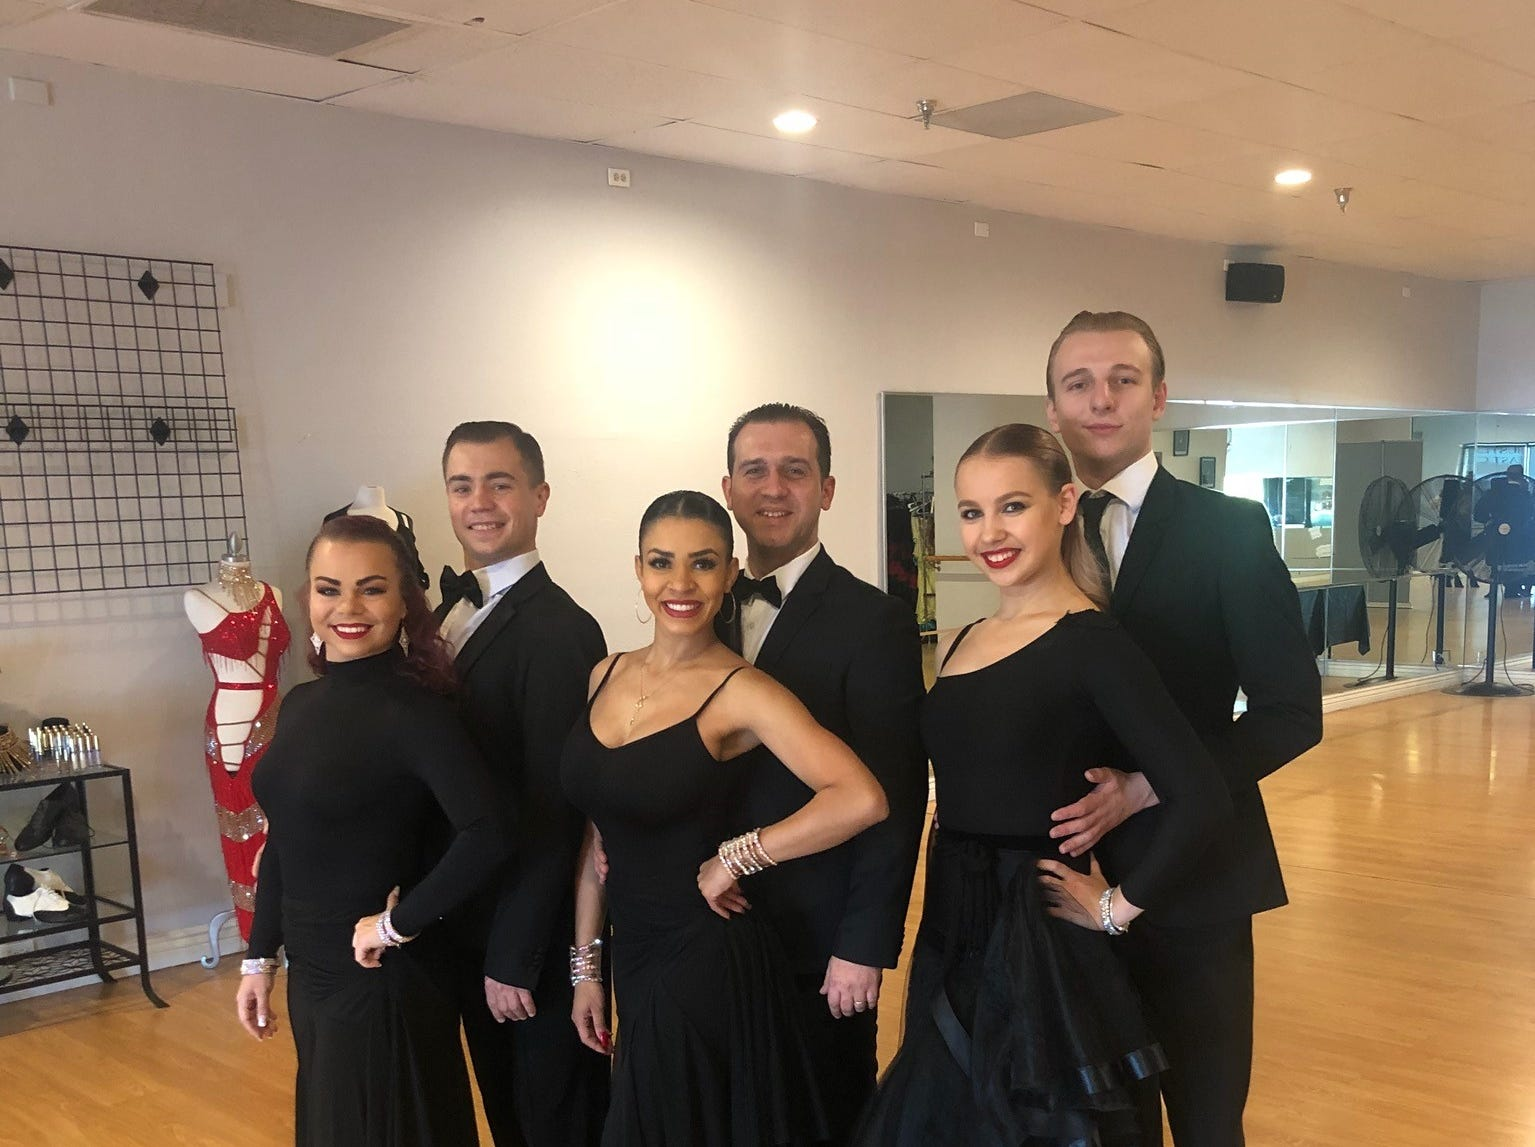 Paradise Valley dancers to be in Macy's parade: 'I have never felt more American'